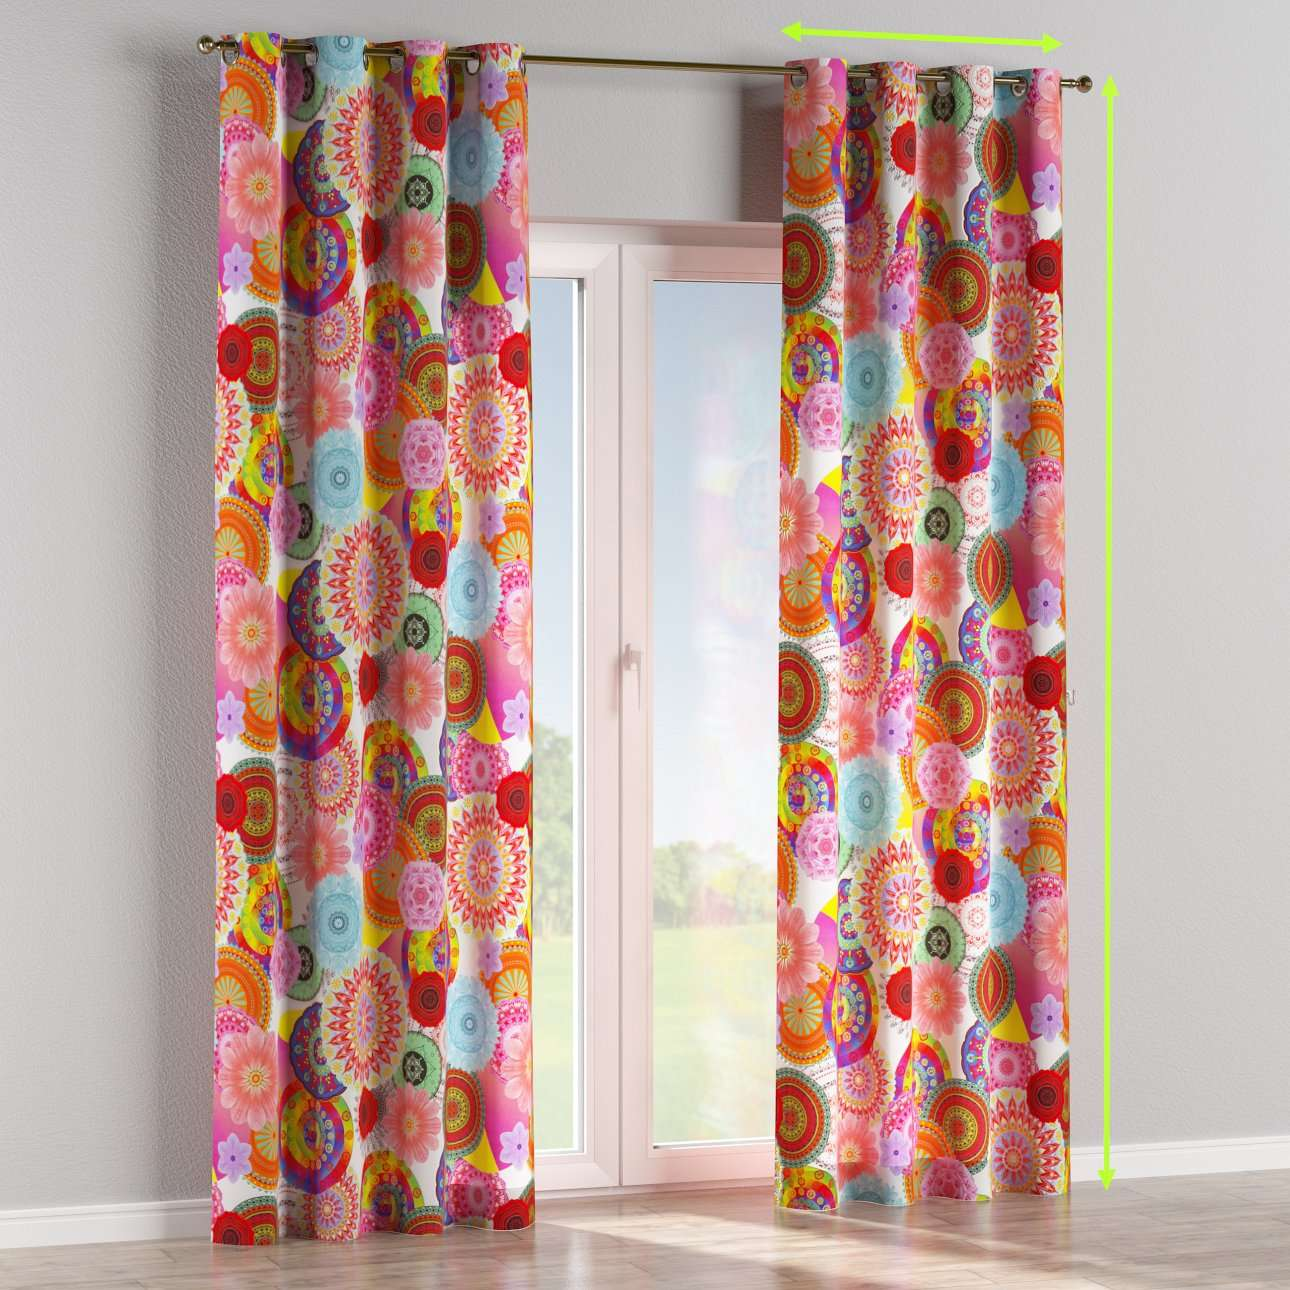 Eyelet lined curtains in collection Comic Book & Geo Prints, fabric: 135-22